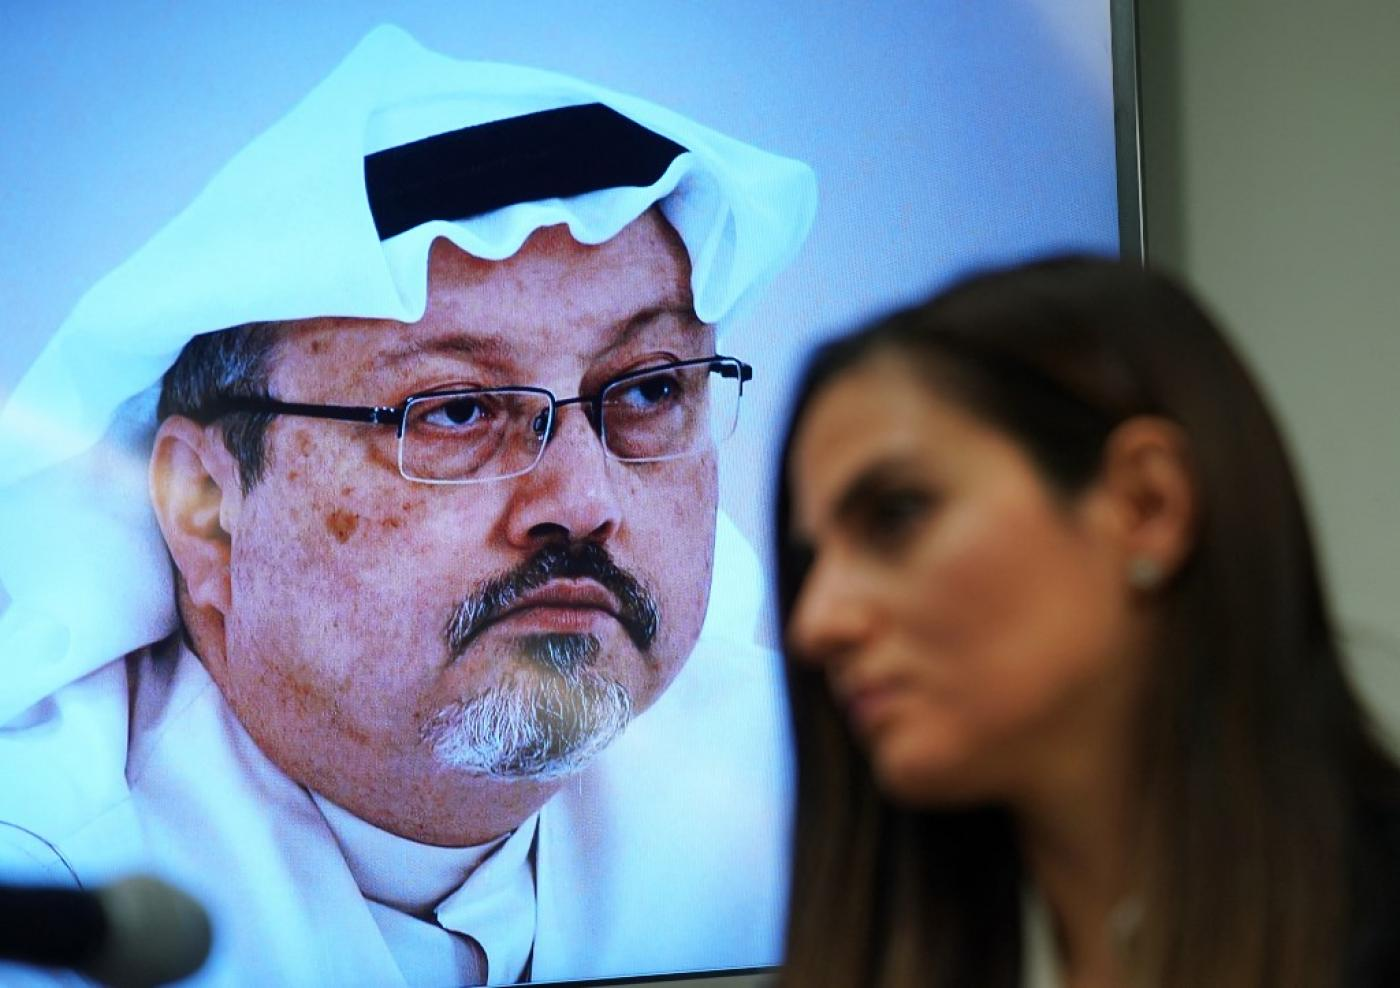 Report on Khashoggi killing will strain U.S.-Saudi relations